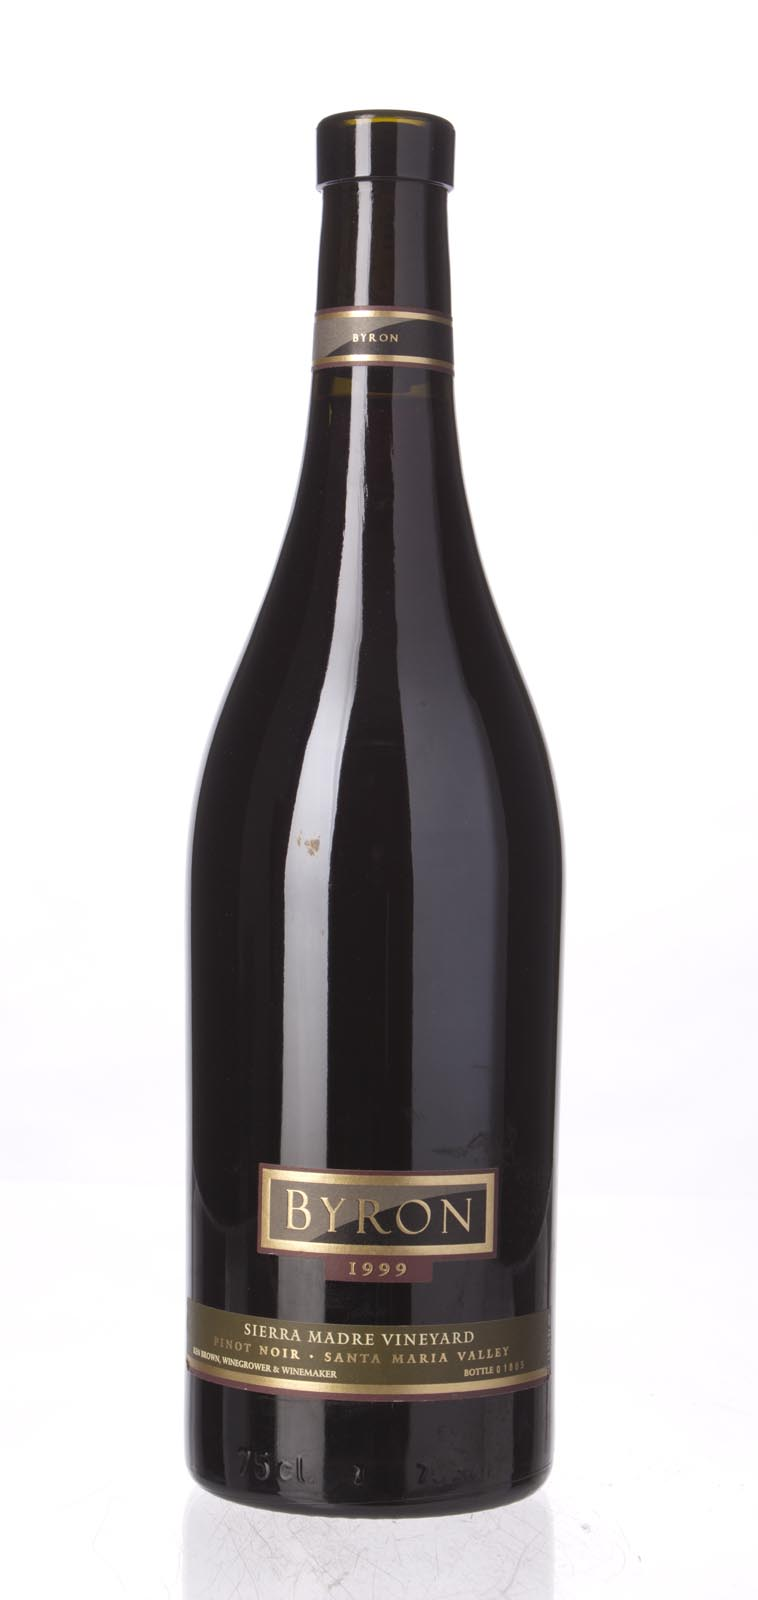 Byron Pinot Noir Sierra Madre Vineyard 1999, 750mL (WA88) from The BPW - Merchants of rare and fine wines.